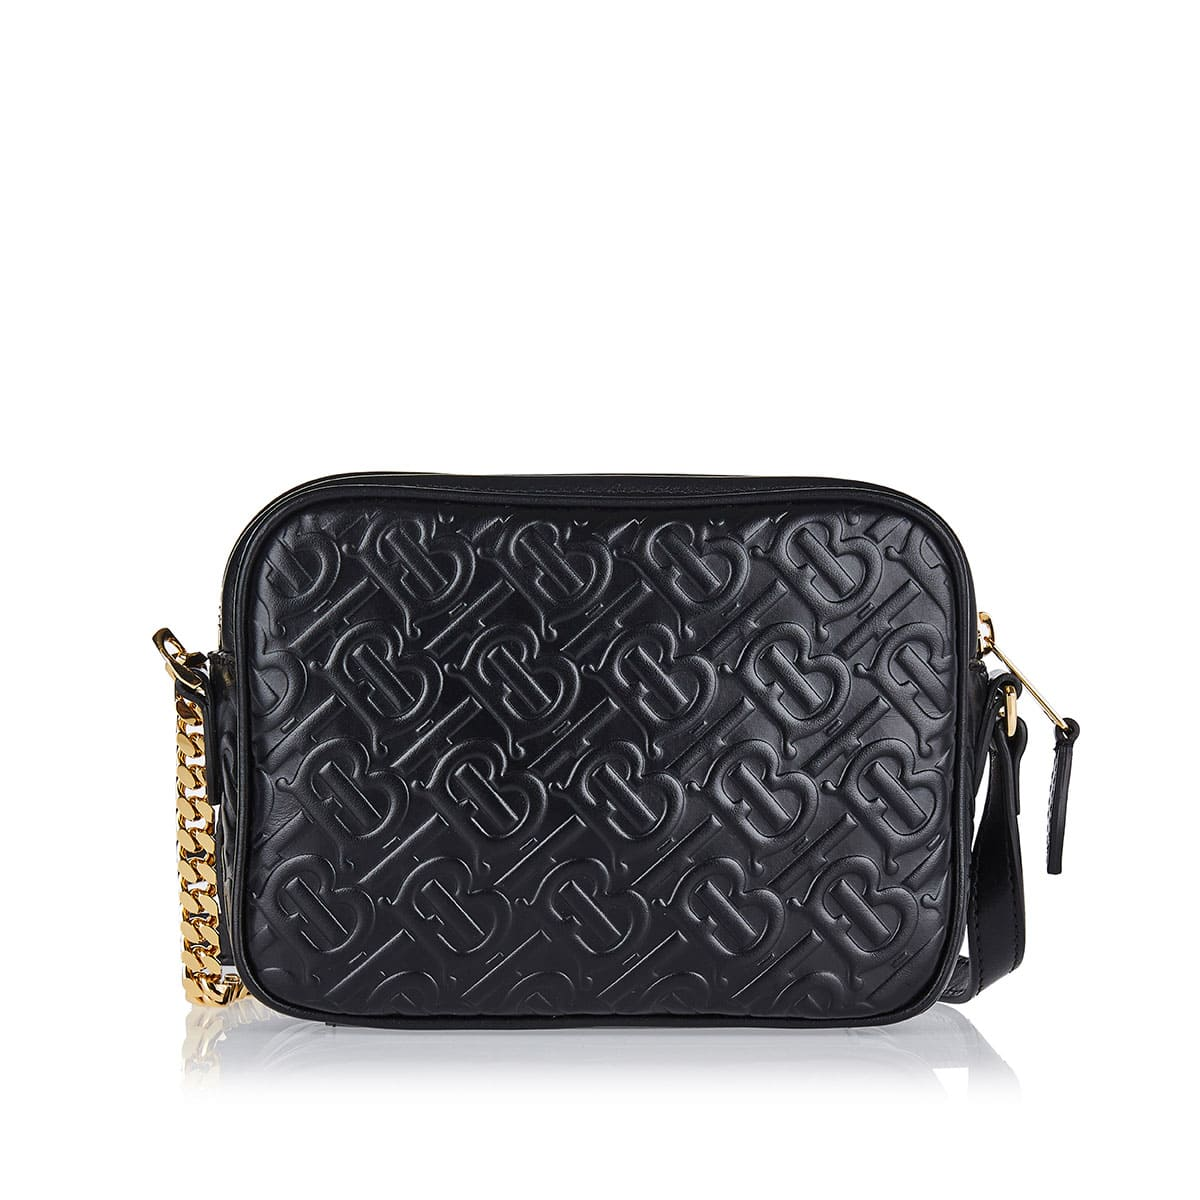 TB logo quilted leather camera bag